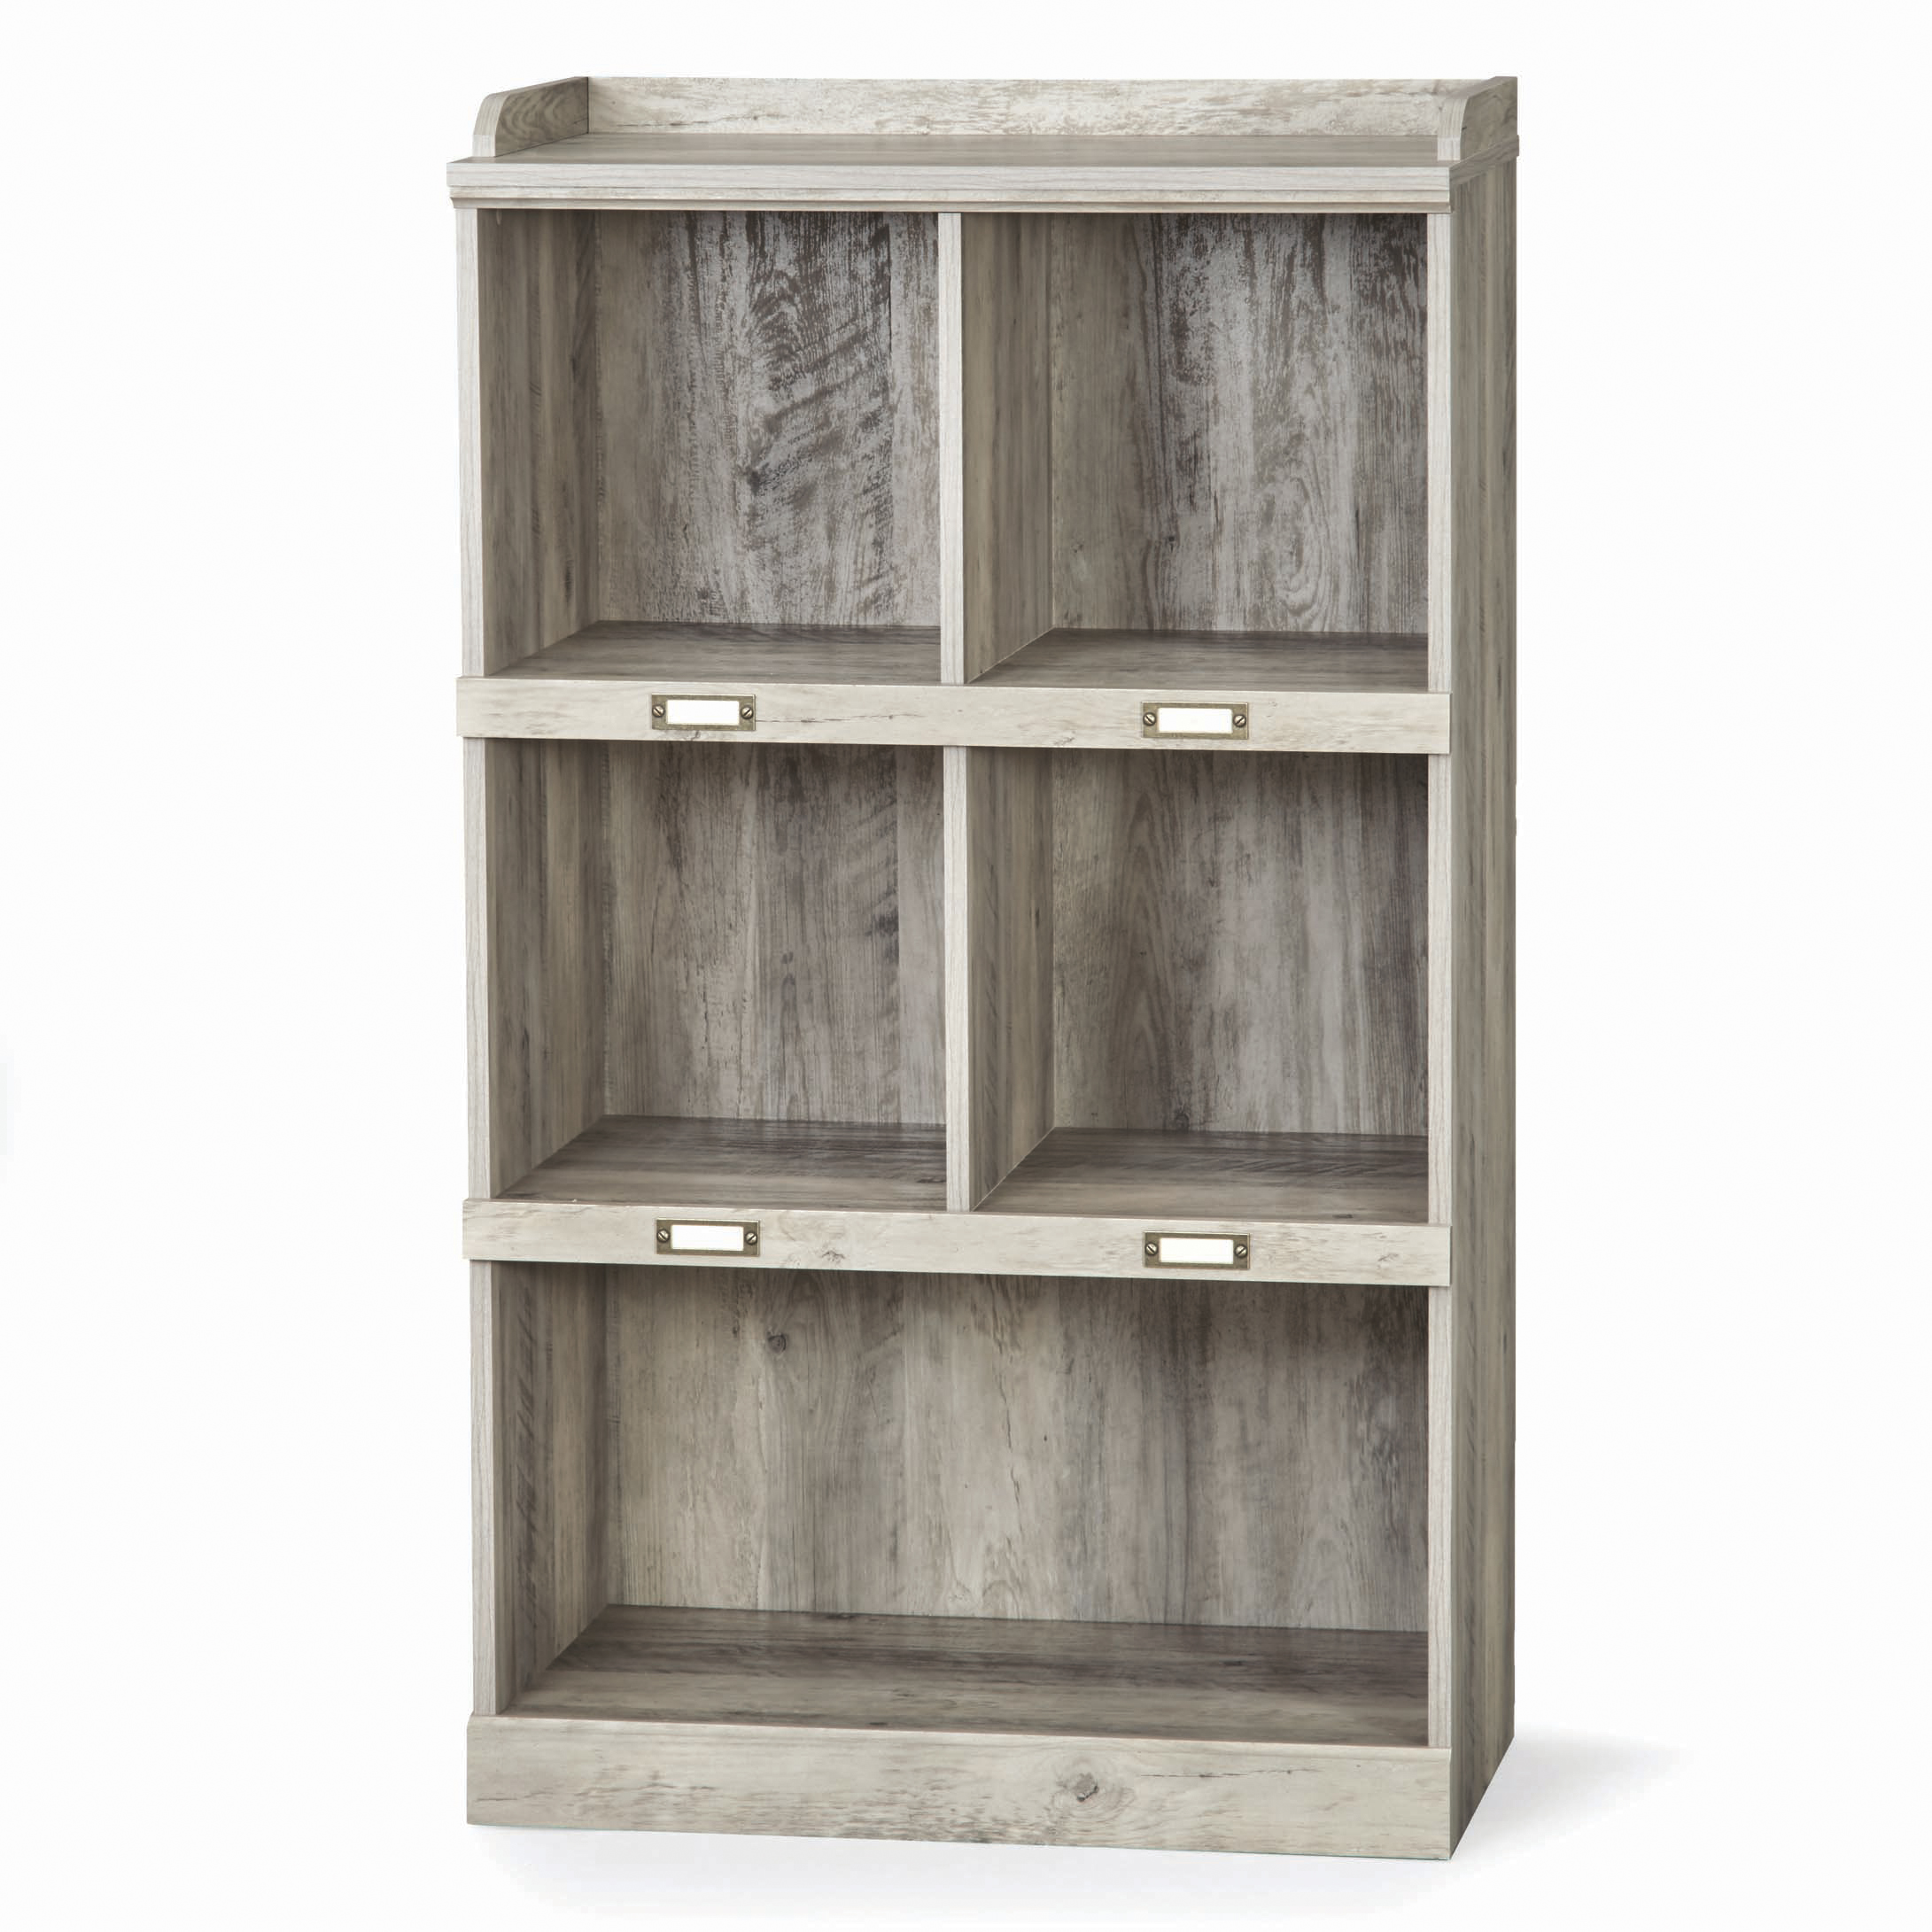 Better Homes & Gardens Modern Farmhouse 5-Cube Organizer with Name Plates, Rustic Gray Finish